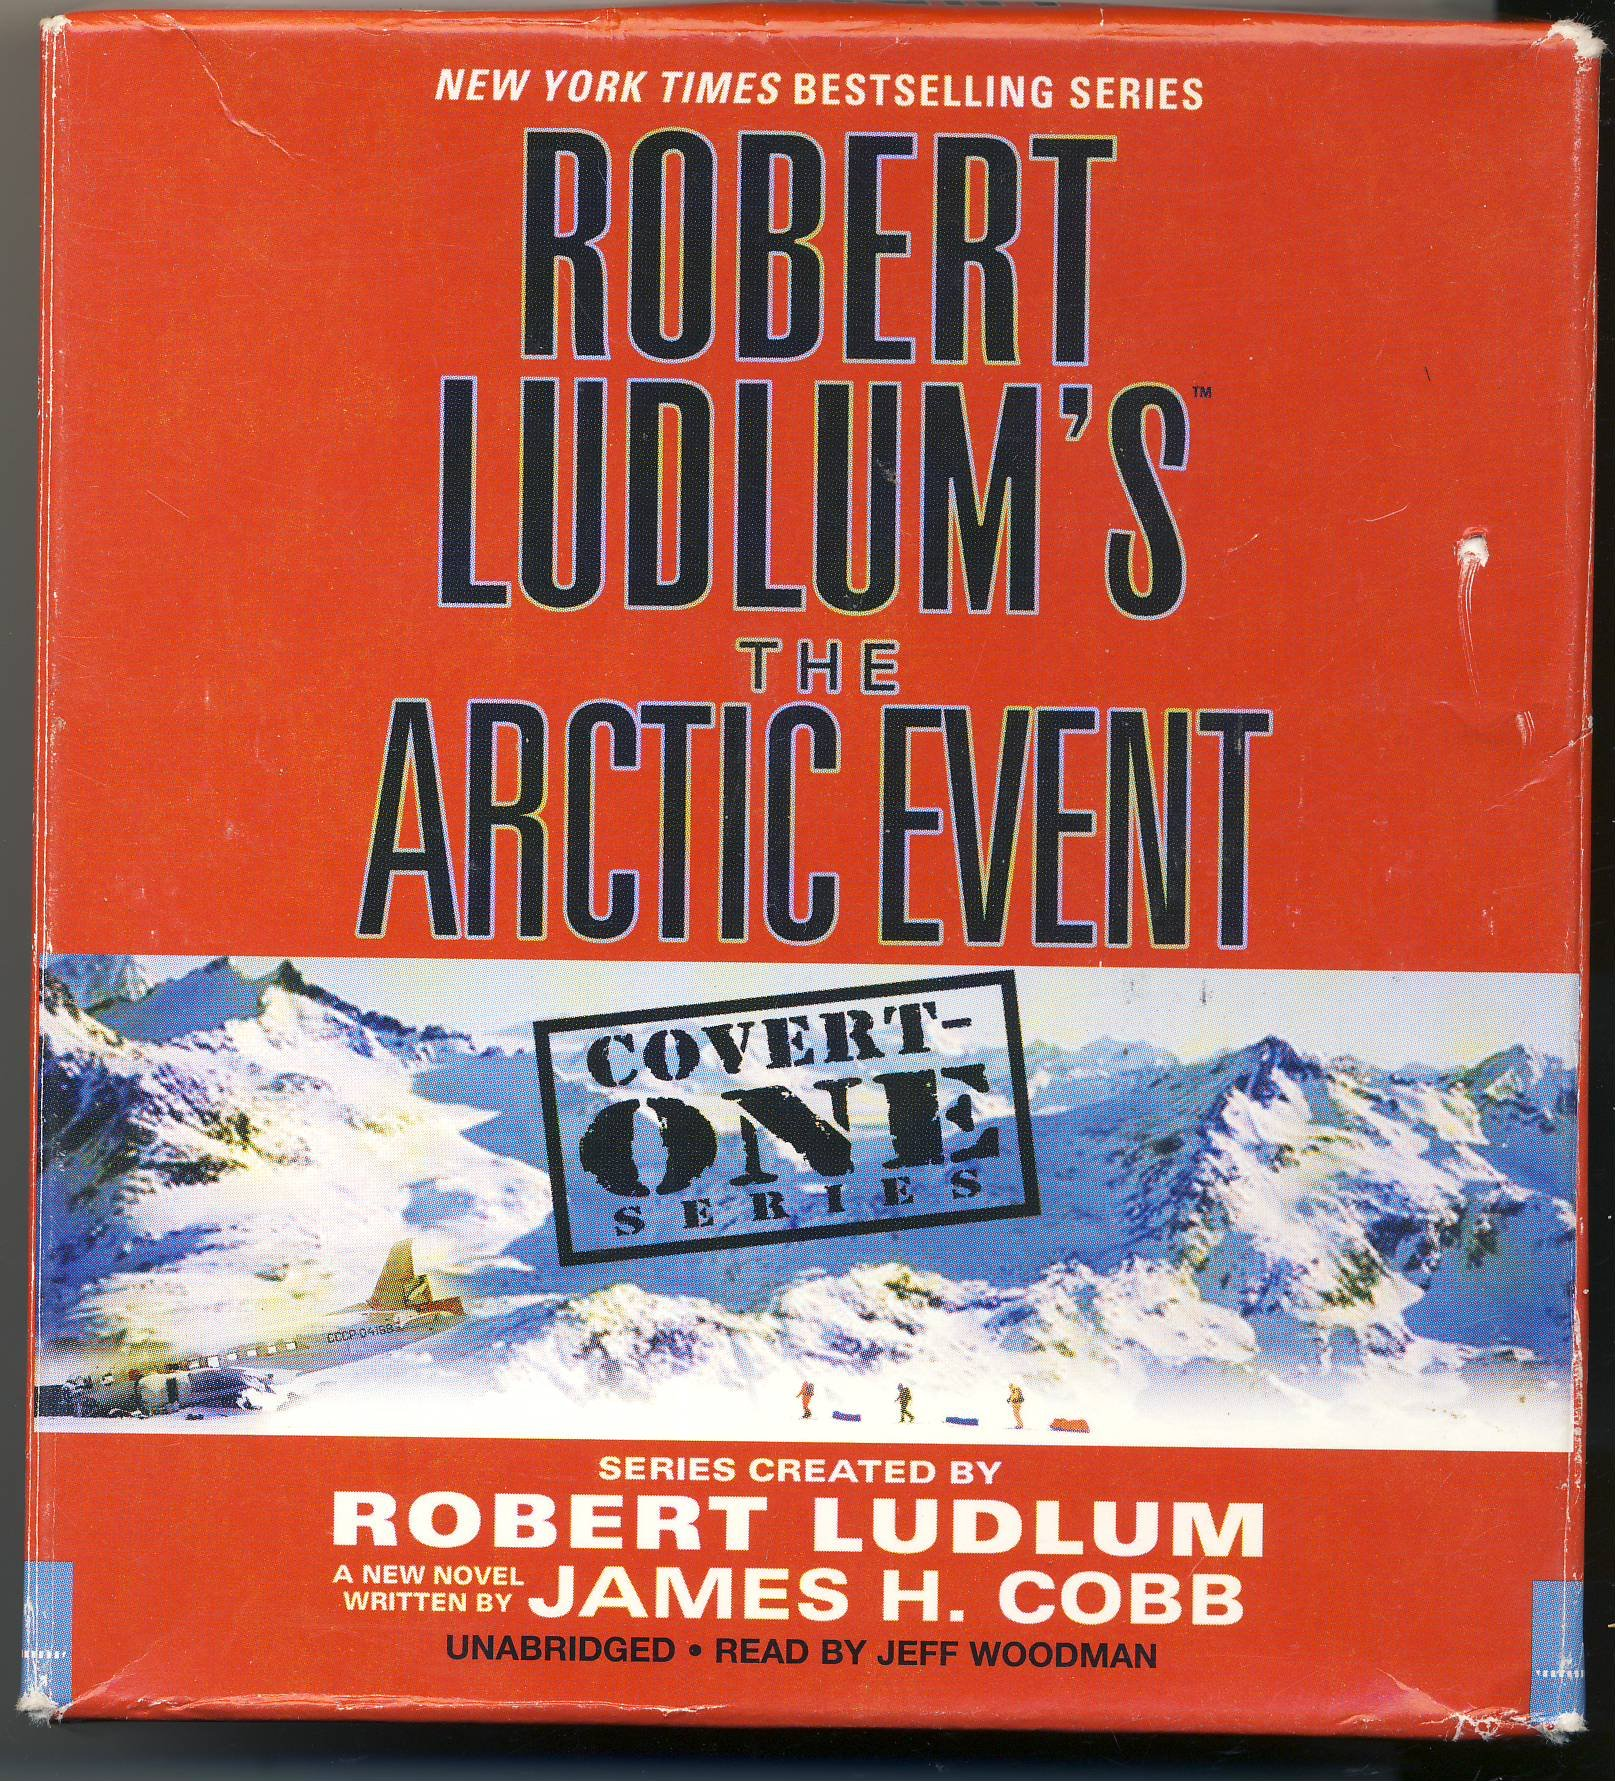 The Arctic Event by Robert Ludlum and James H. Cobb Unabridged CD Audiobook (Covert One Series)